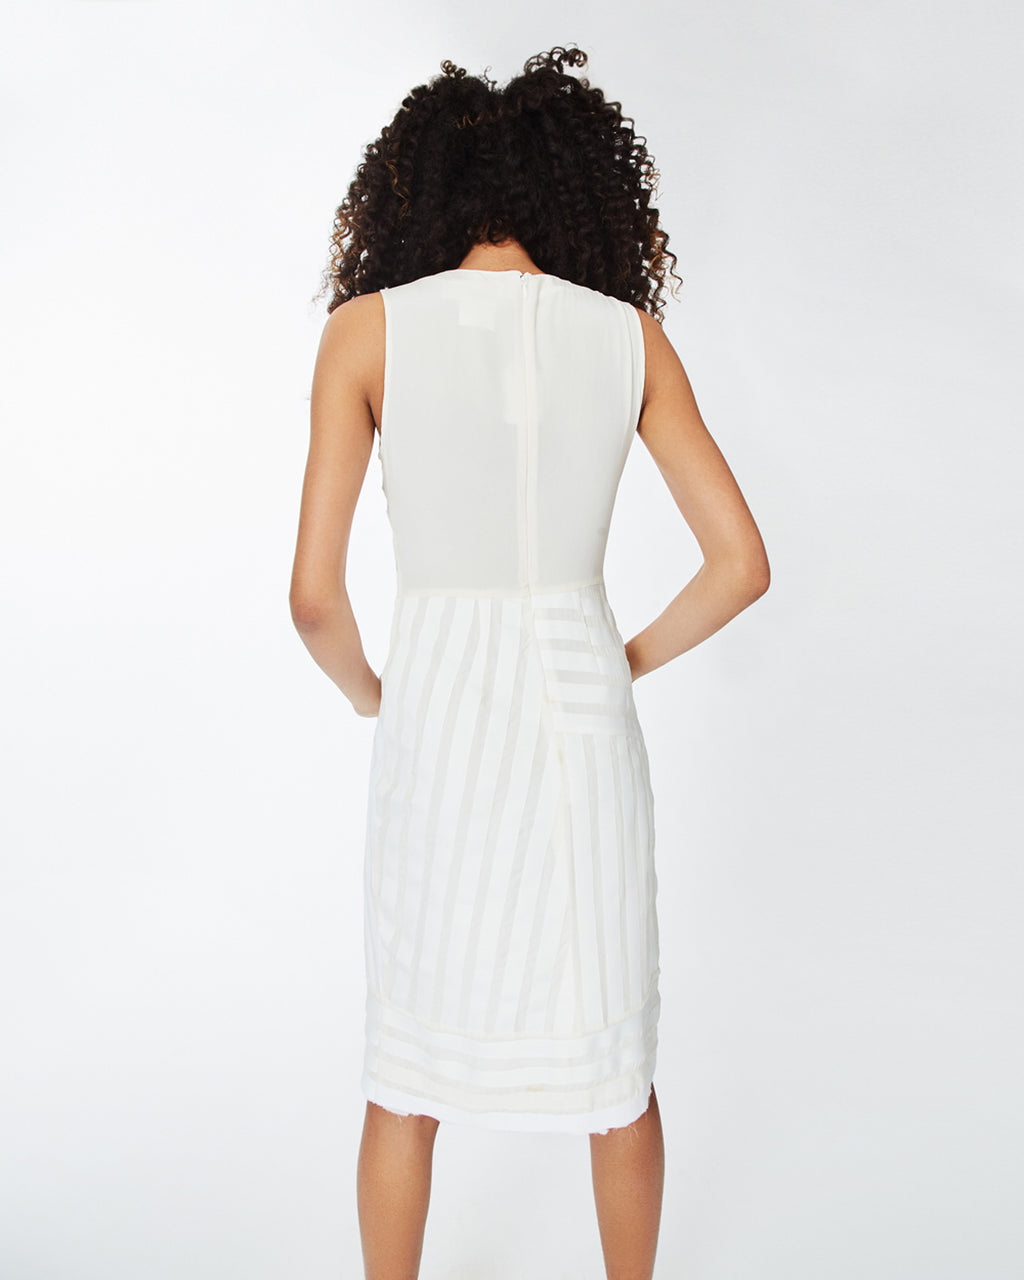 CO10098 - GROSGRAIN DRESS - dresses - short - With belted ribbon details, this white dress is a wardrobe essential. This sleeveless dress is perfectly light for warmer days and pairs perfectly with slides. Finished with a concealed zipper for closure and unlined. FINAL SALE